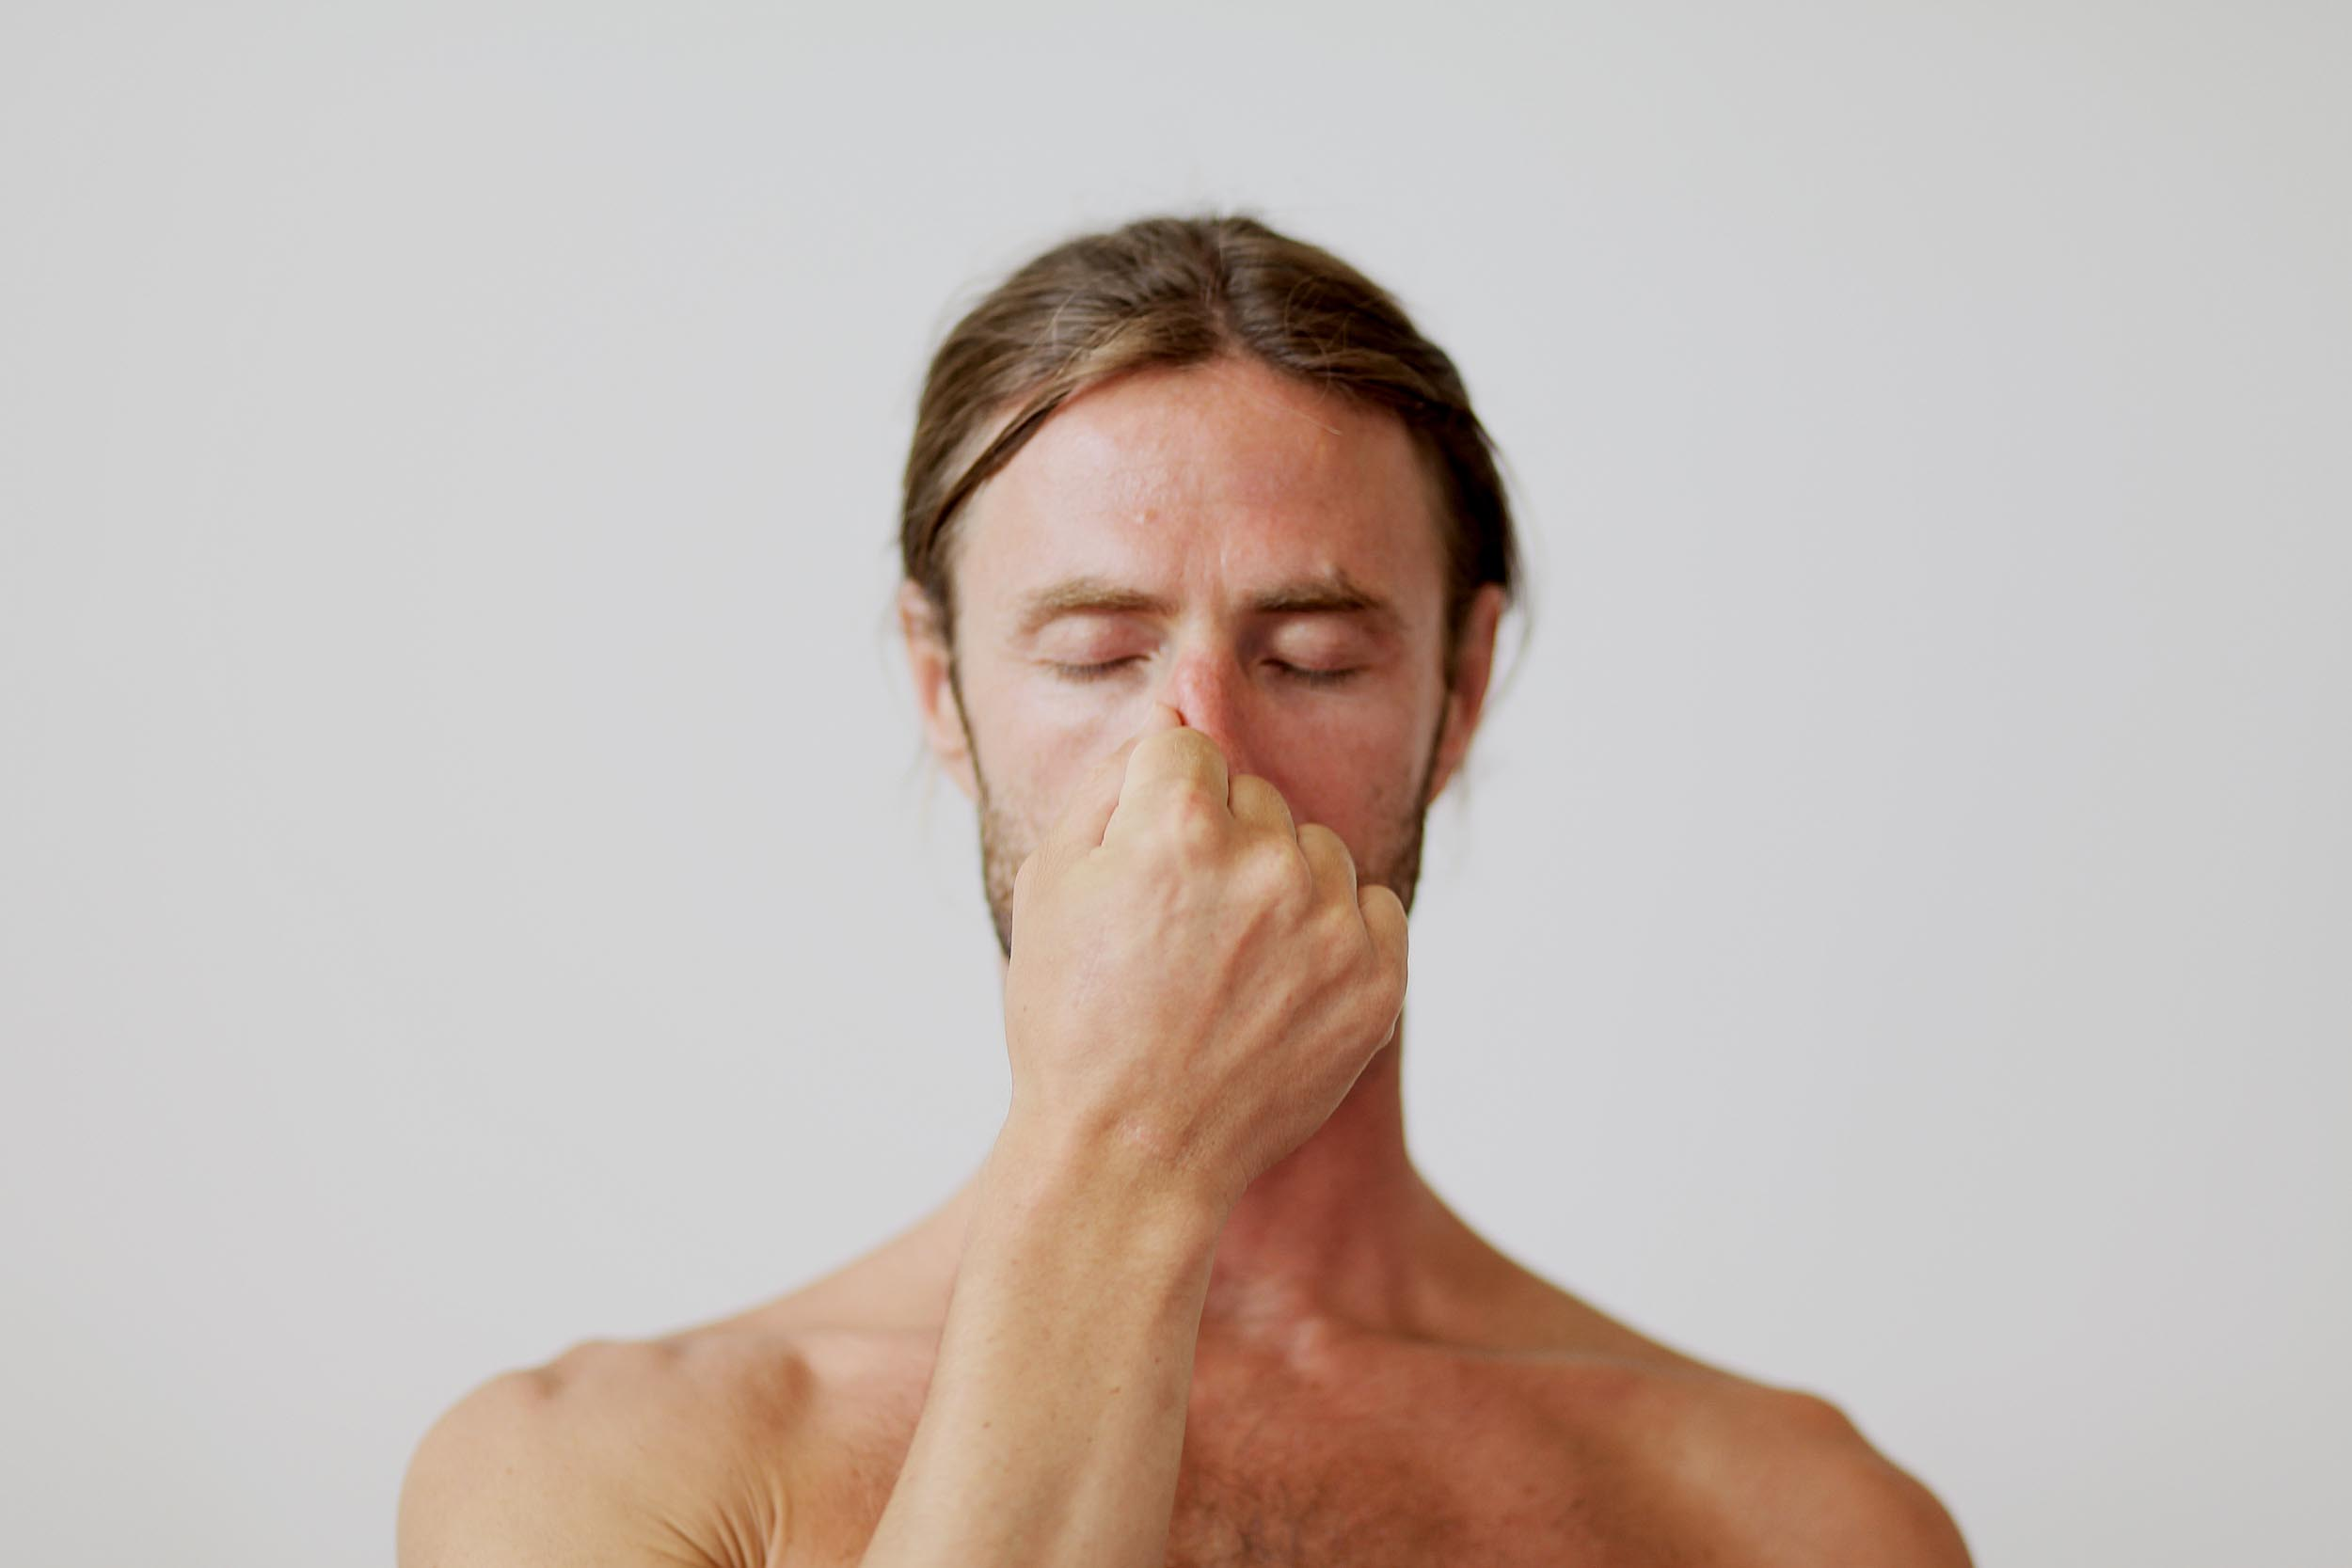 Pranayama the yogi's art of breathing - Prana life force